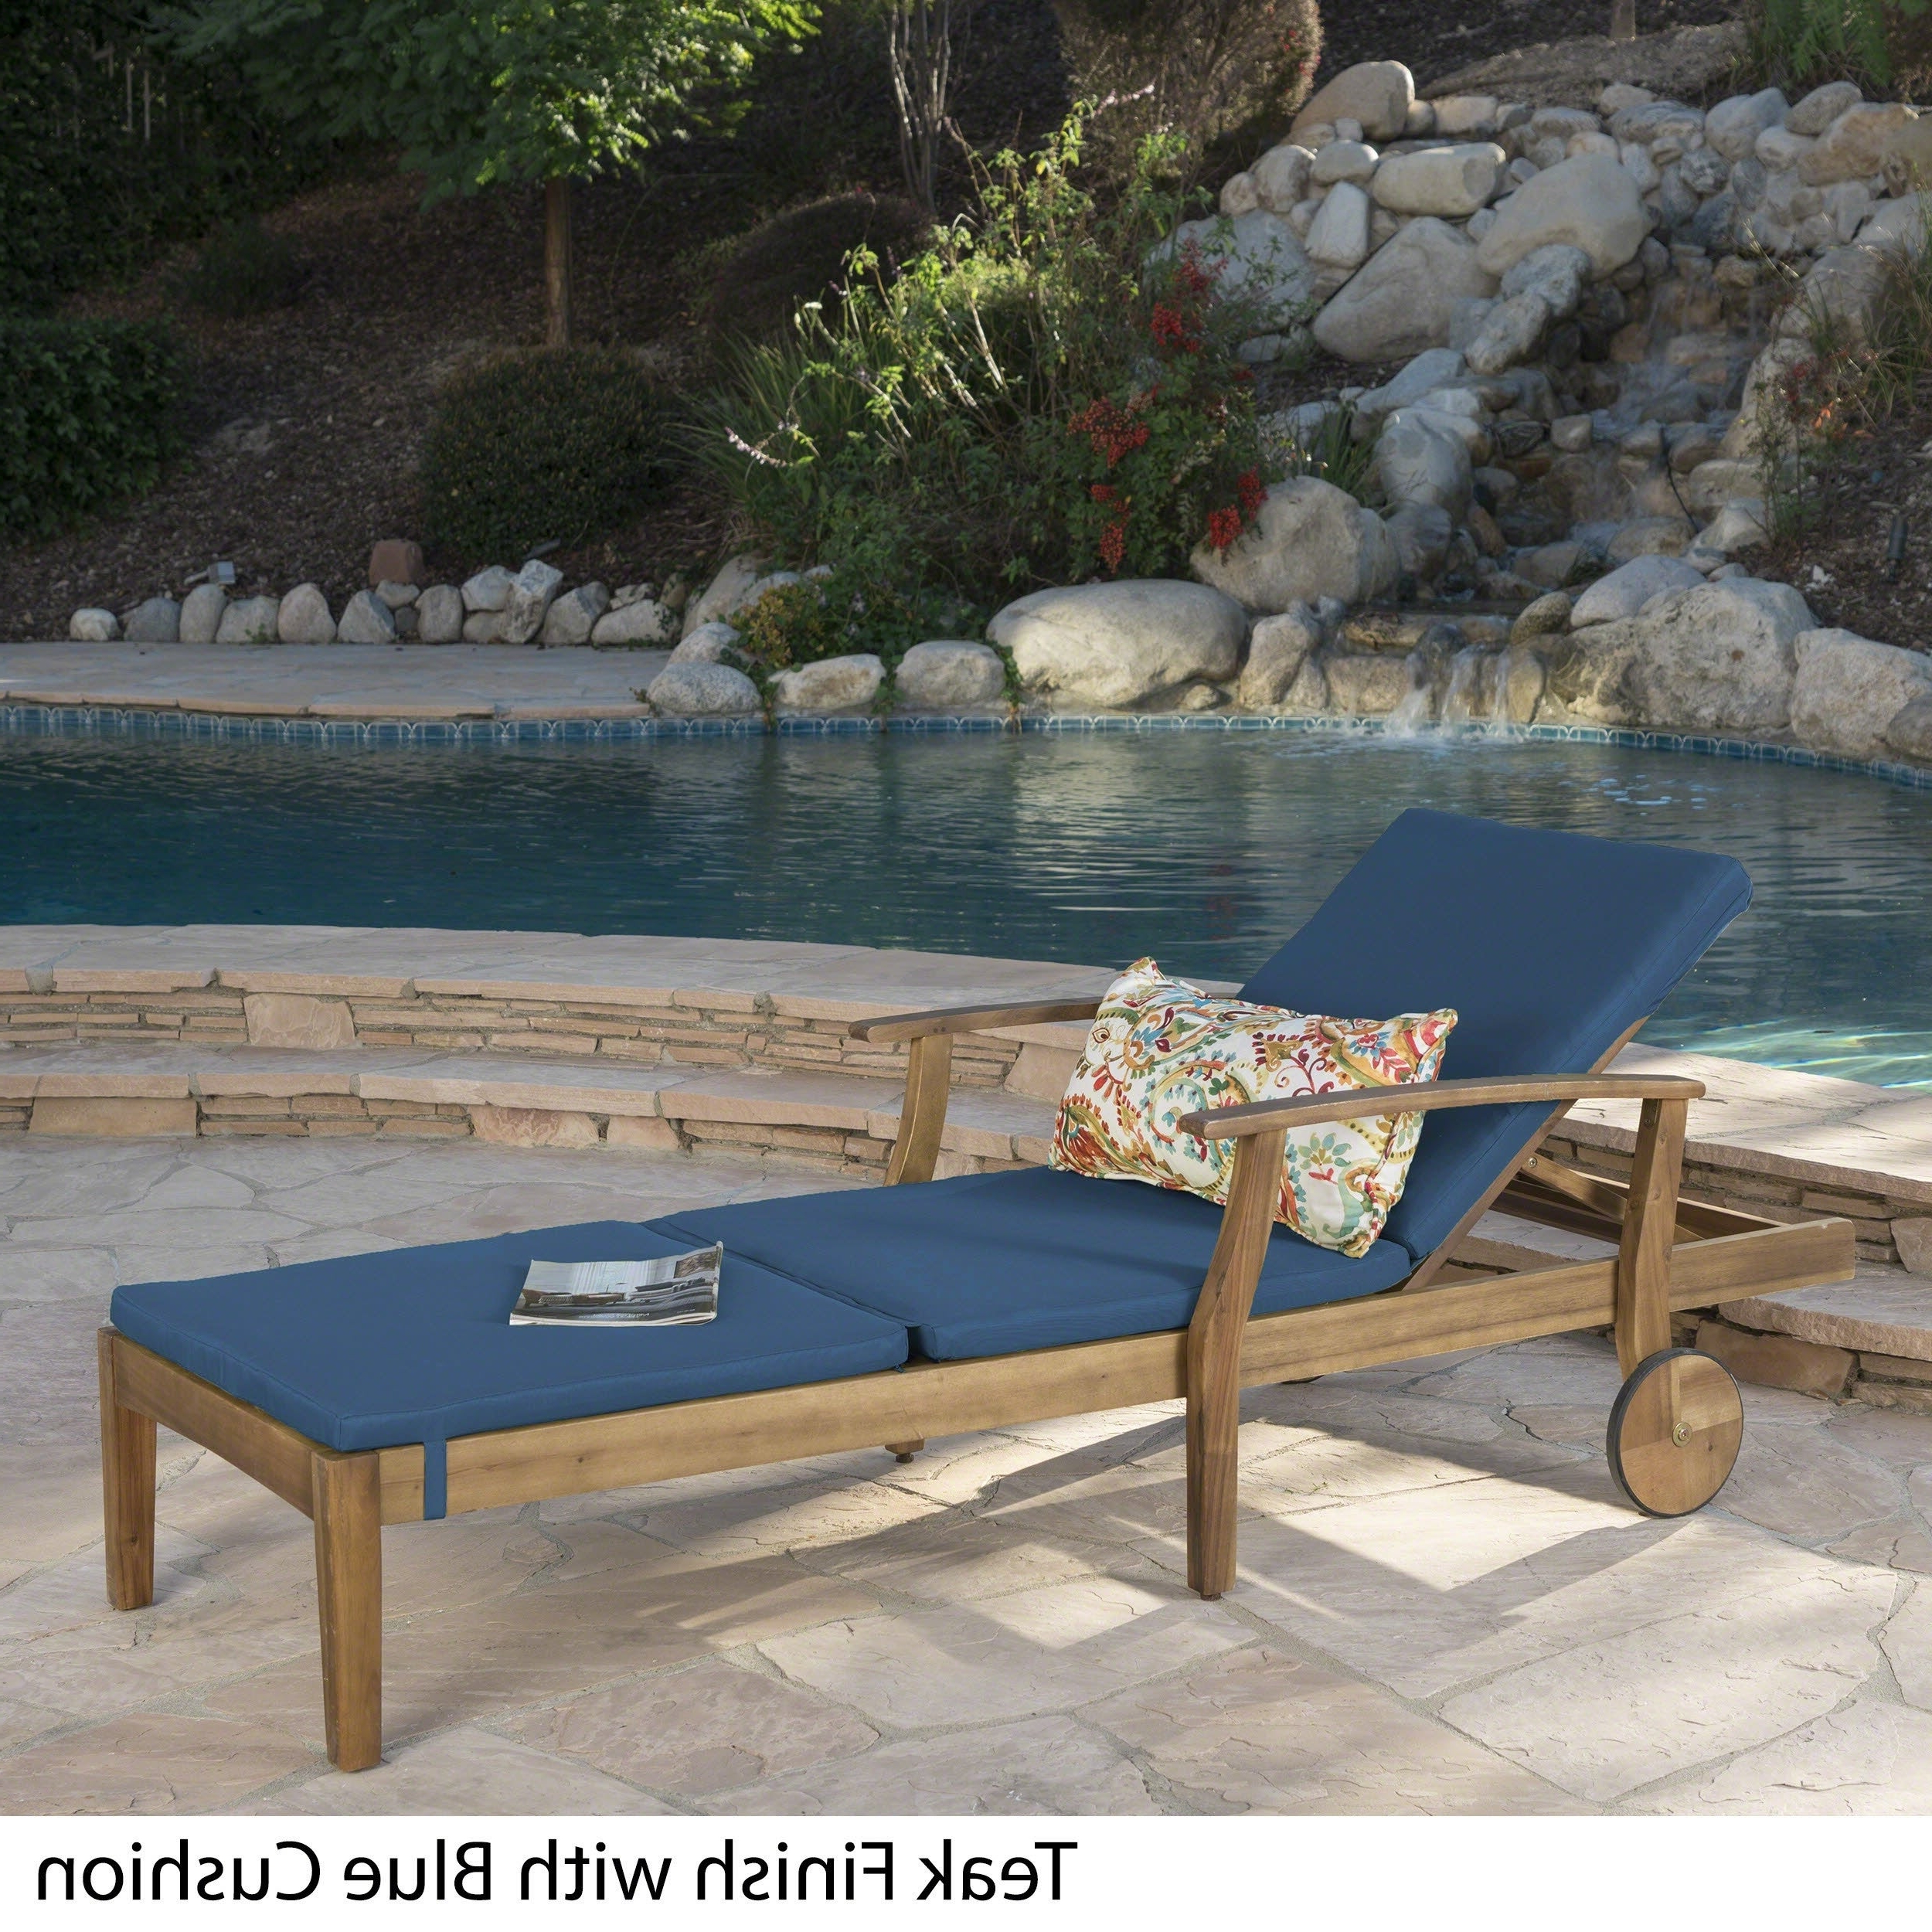 Perla Outdoor Acacia Wood Chaise Lounges Within Recent Perla Outdoor Acacia Wood Chaise Lounge With Cushionchristopher Knight Home (View 5 of 25)